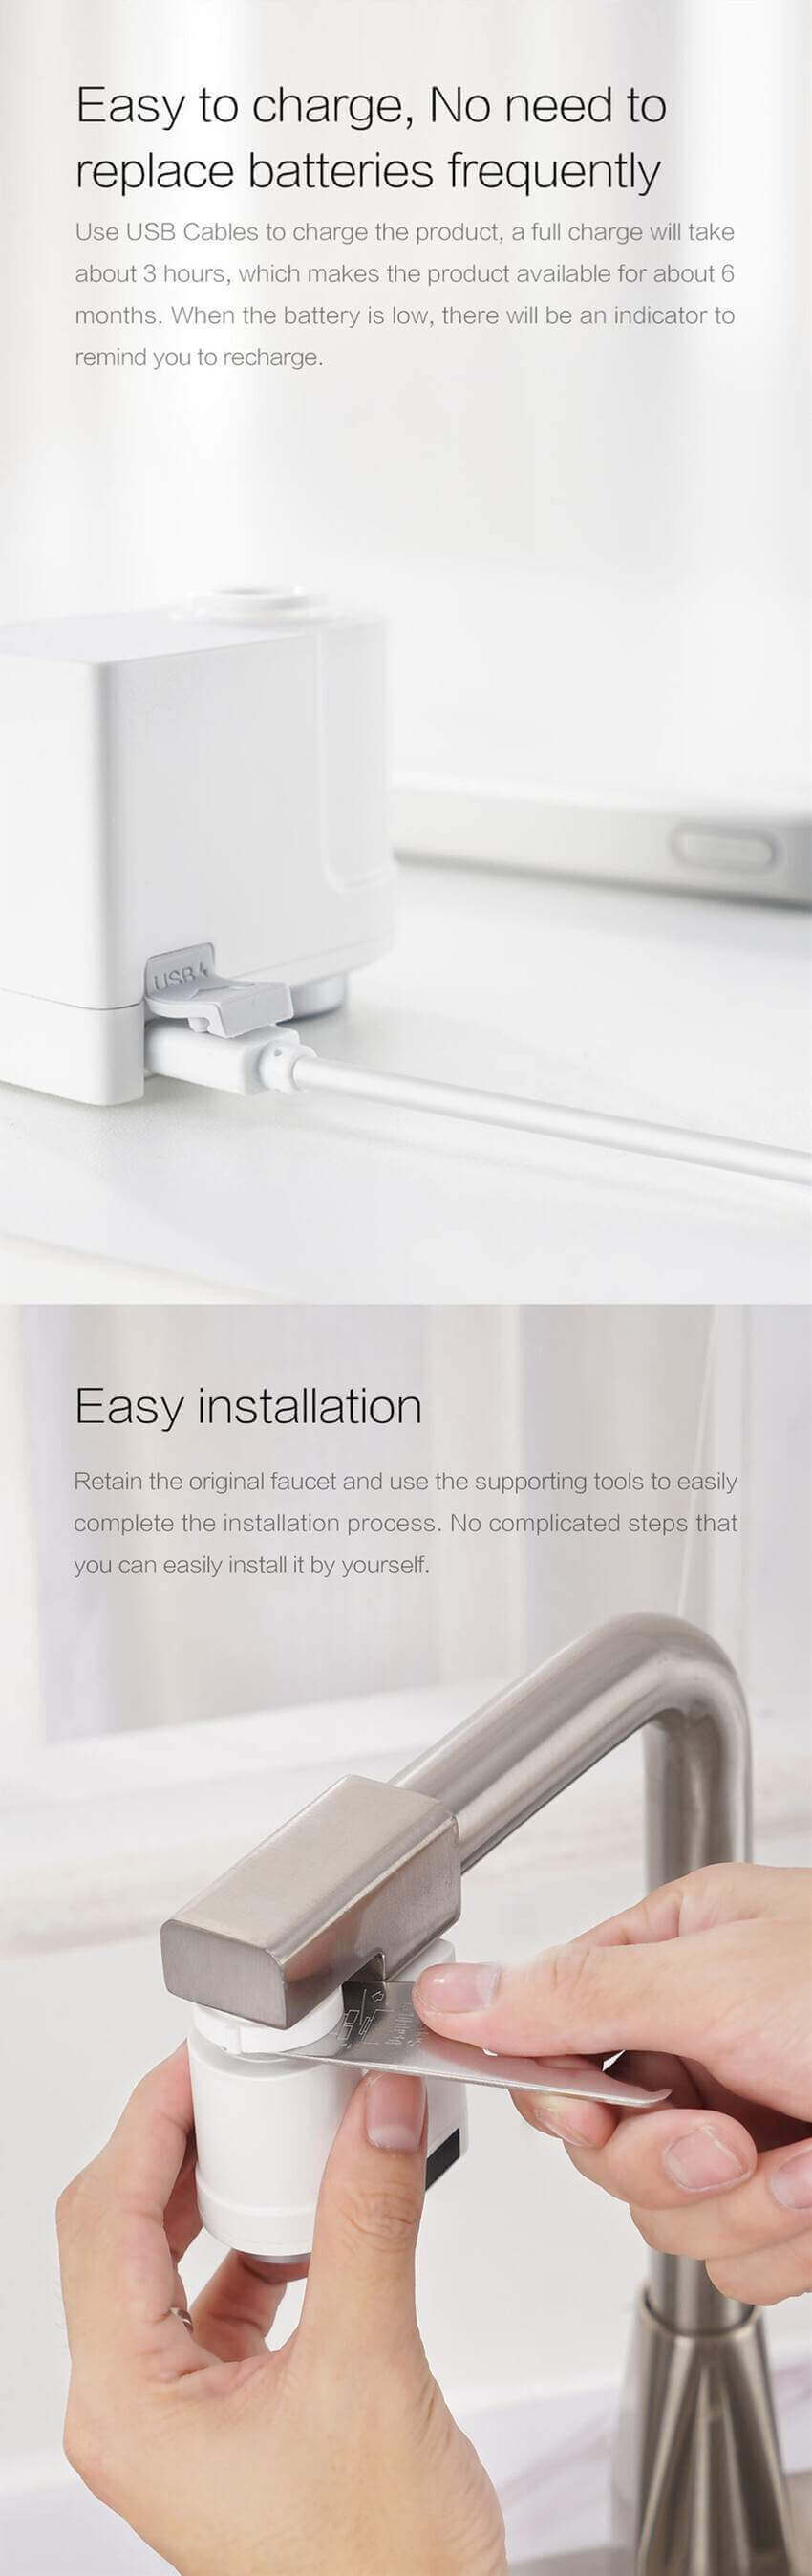 the touchless faucet with 5 minutes easy installation instructions